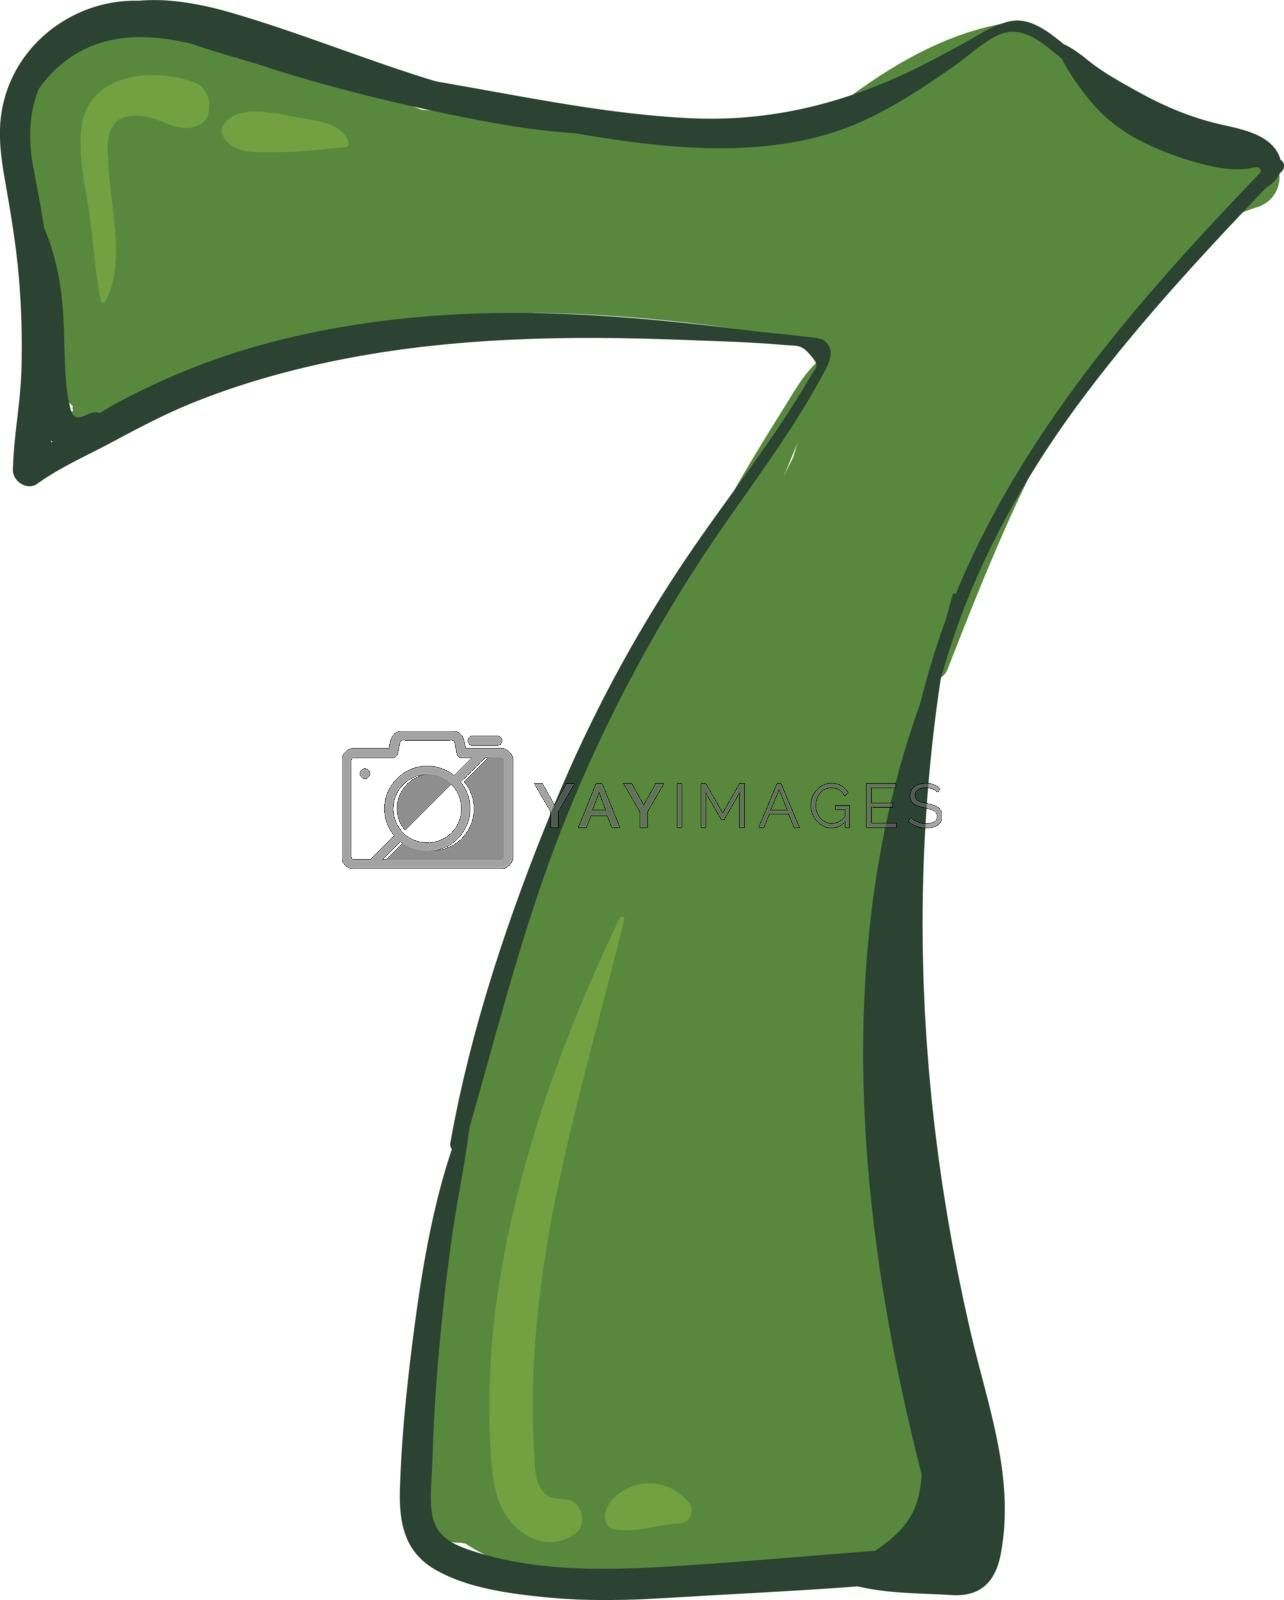 Royalty free image of Clipart number-7 in green color vector or color illustration by Morphart